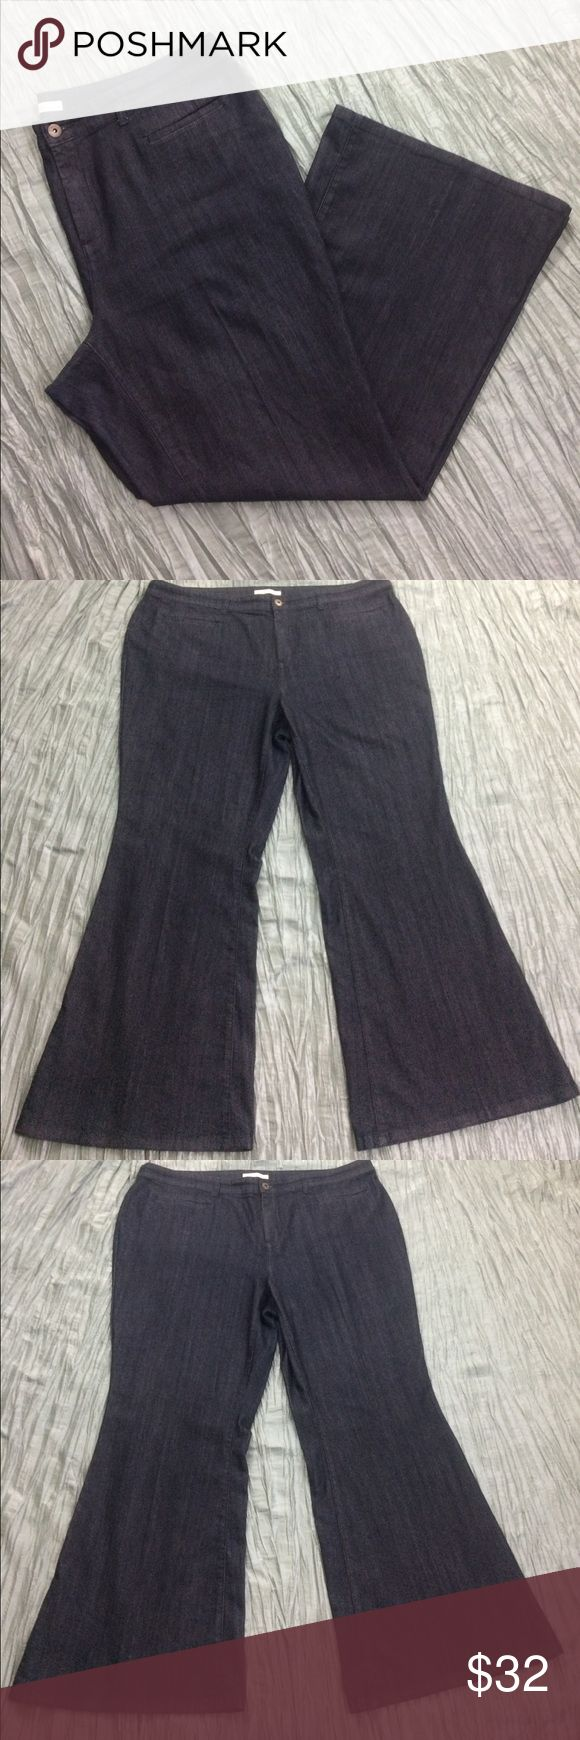 French Connection boot cut dark wash denim jeans Excellent condition. Only minor signs of wear. Pockets on front and back. Dark wash boot cut jeans. French Connection UK Style. French Connection Jeans Boot Cut